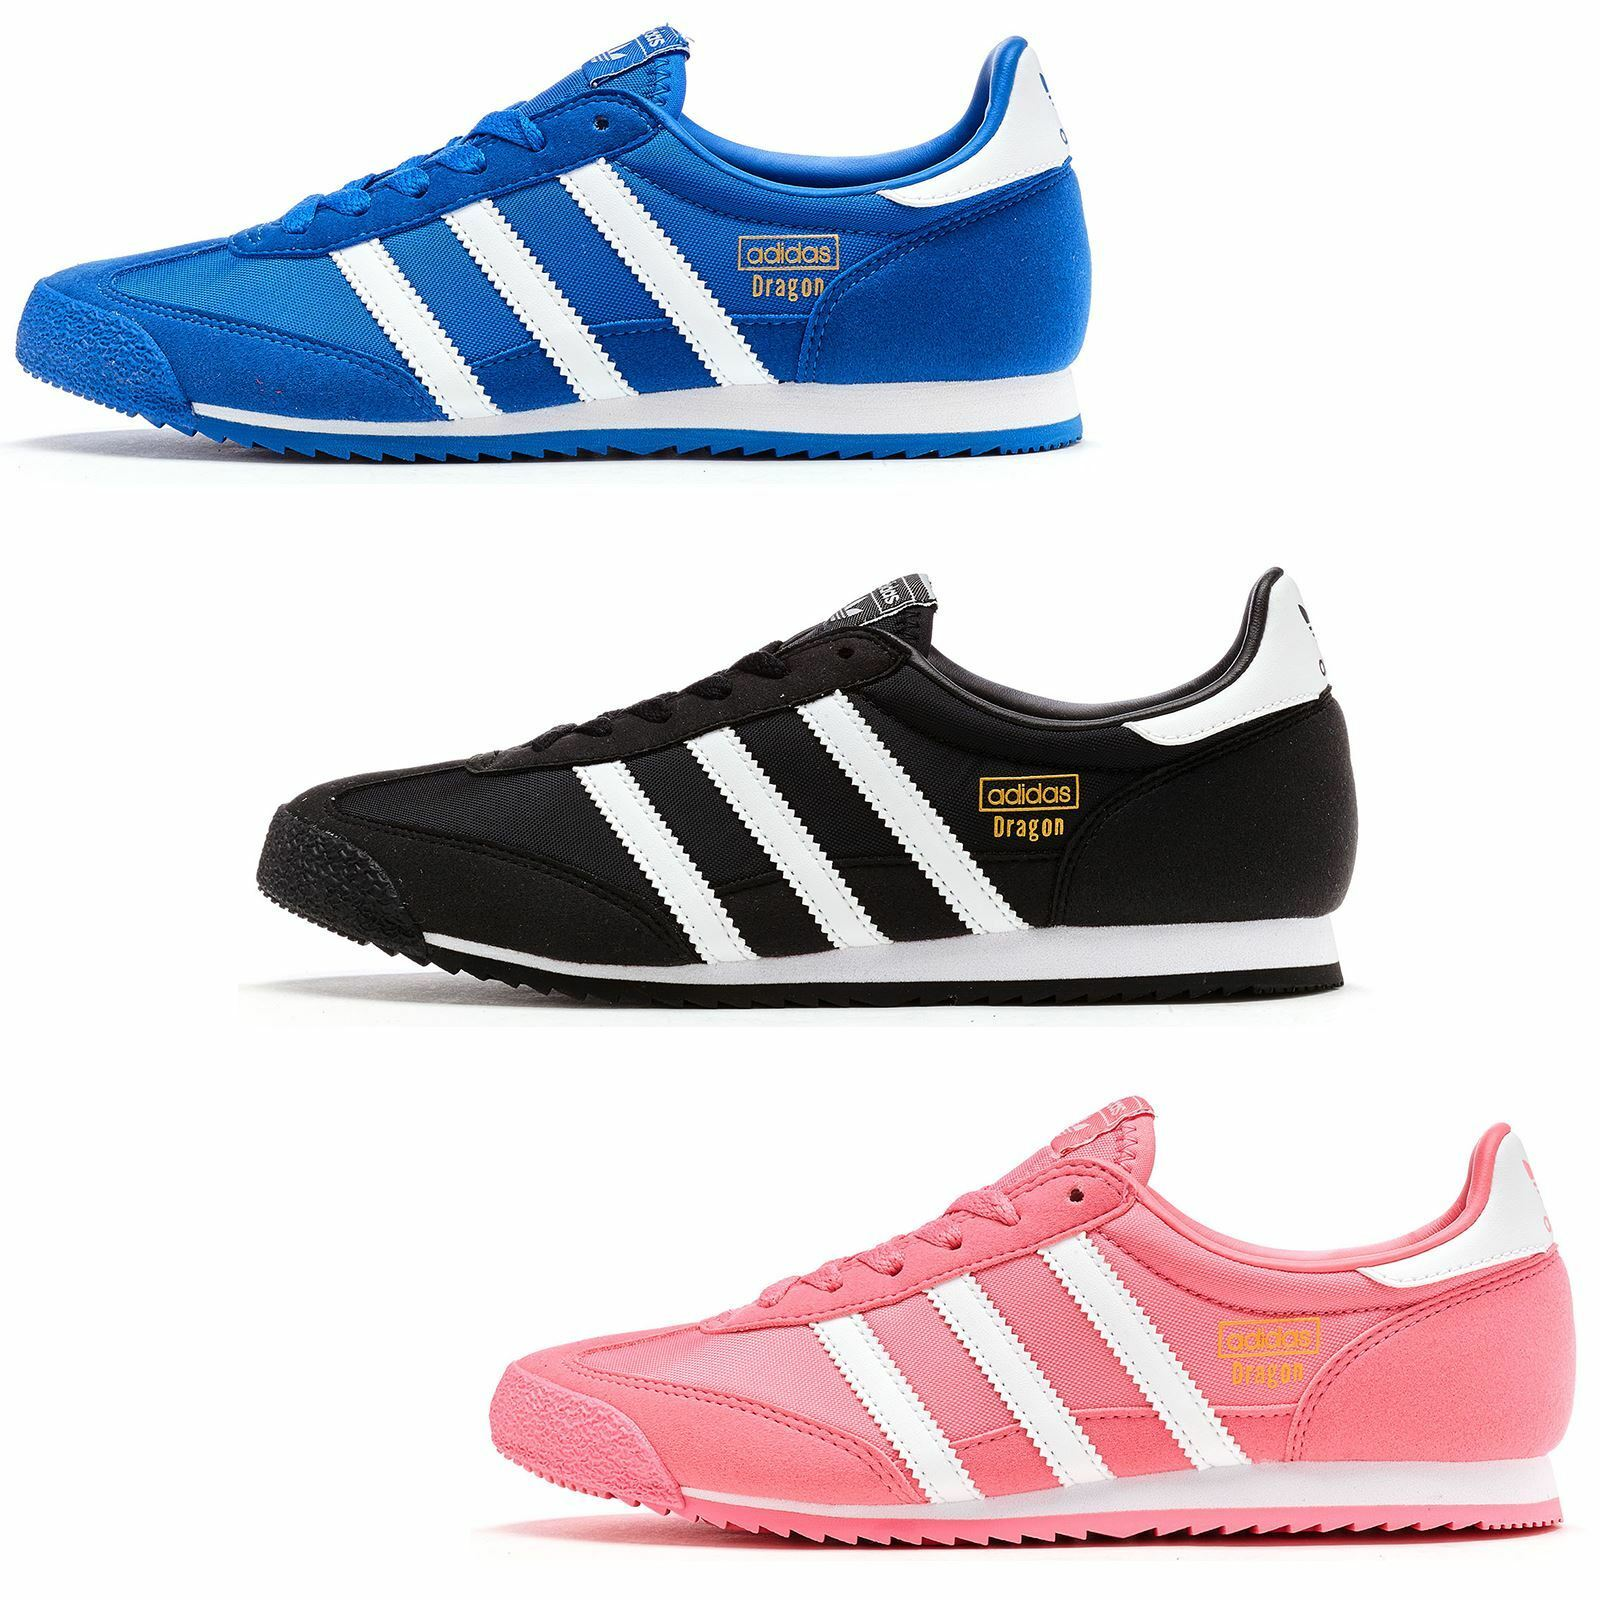 Adidas Adidas Adidas Originals GS Dragon Suede Trainers in All Sizes 0e3551